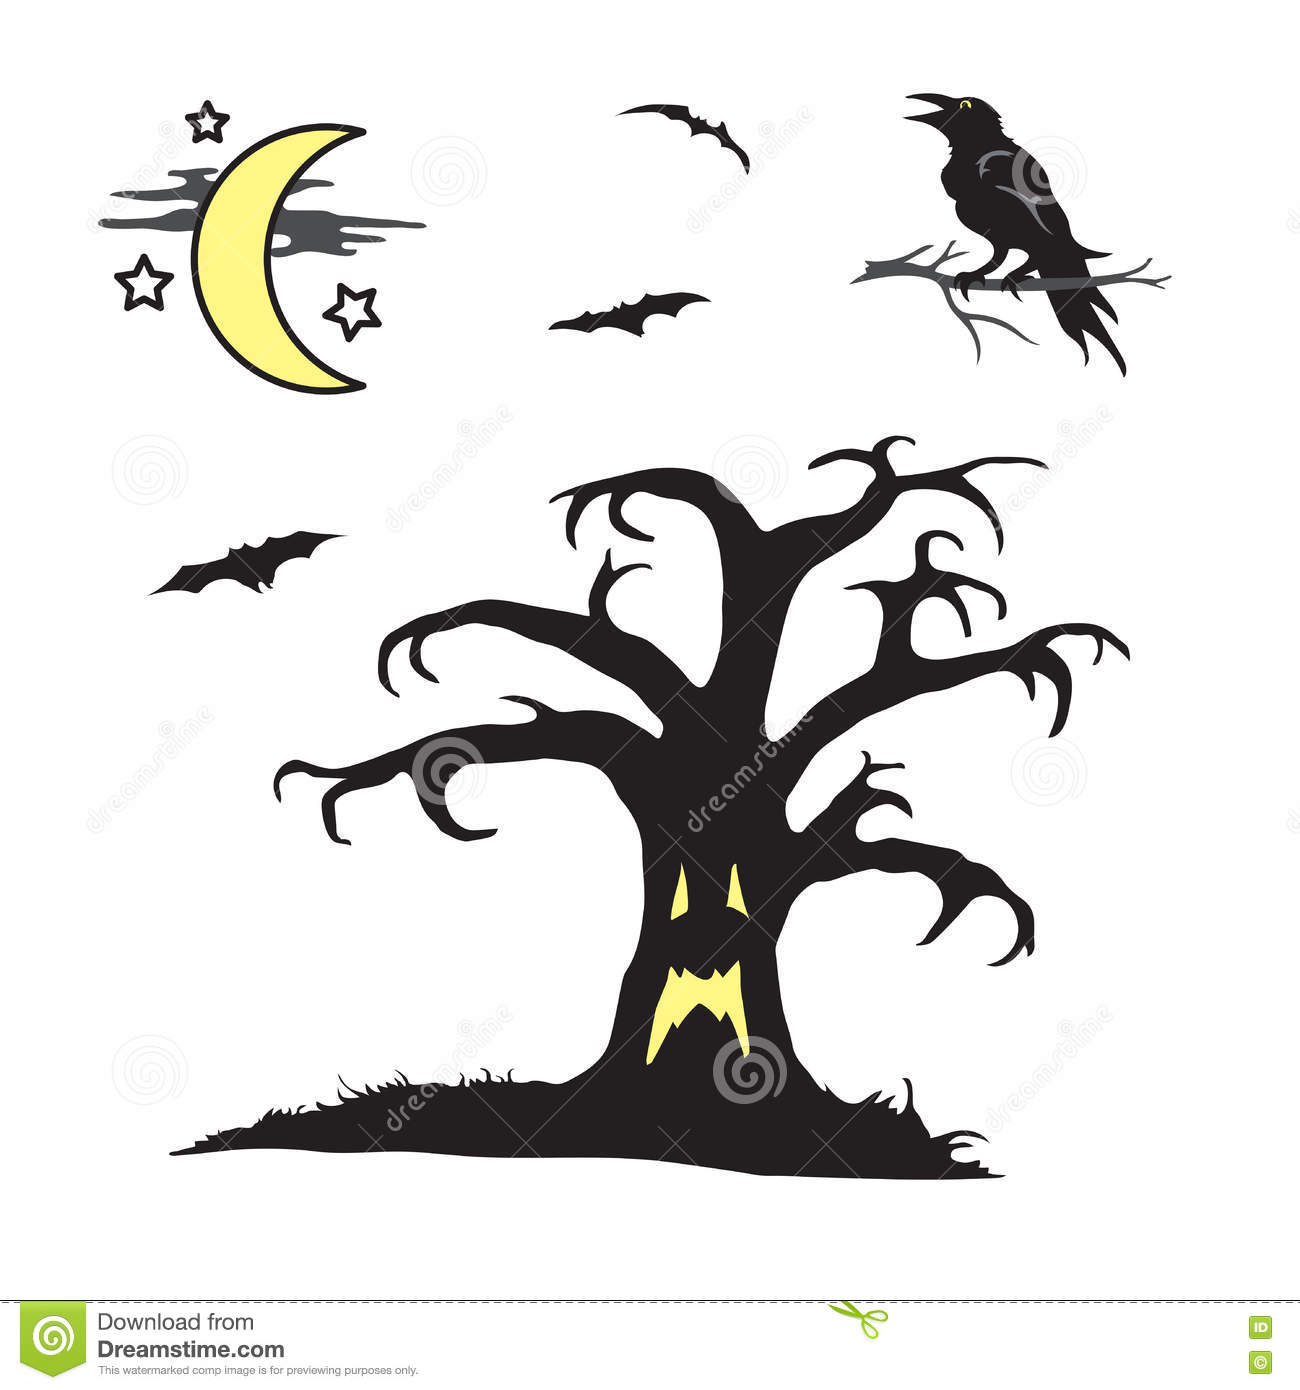 Halloween Spooky Tree Face.Halloween Spooky Tree With Face Scene Stock Vector